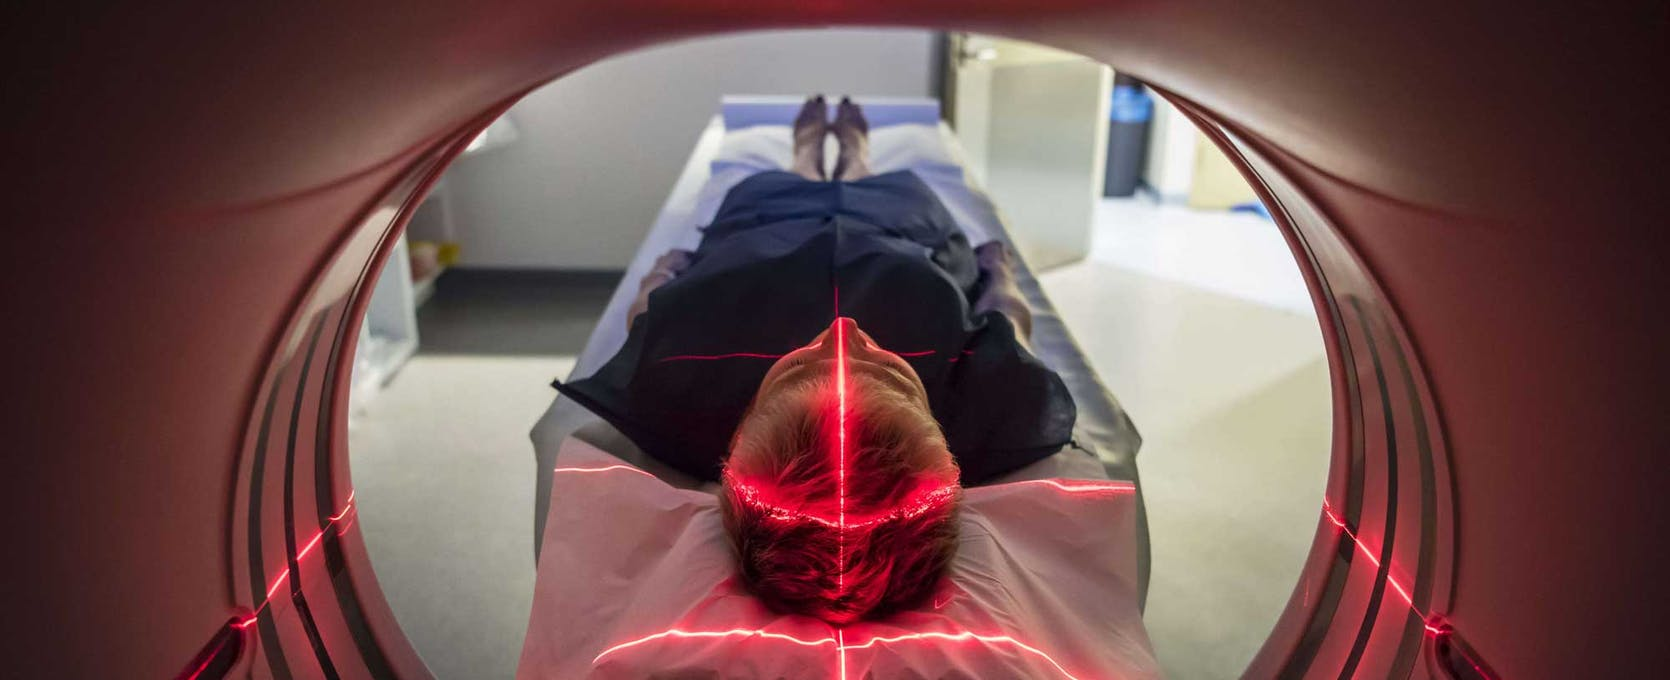 Patient entering a medical device scanner